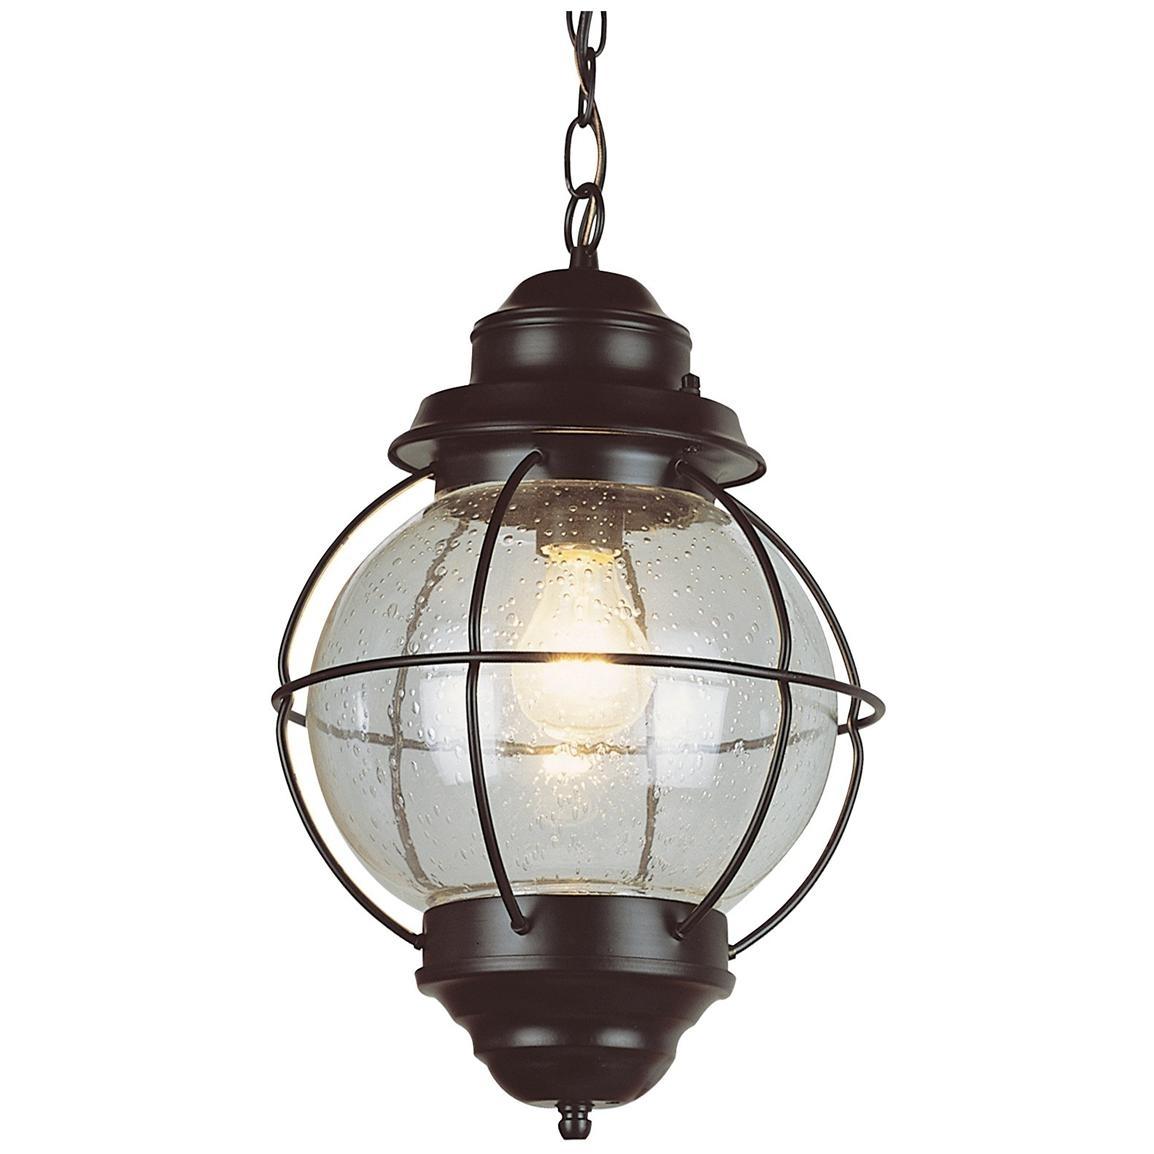 Nautical Hanging Globe Lantern   Things That Don't Fit In An Earthen With Regard To Outdoor Hanging Bar Lights (#10 of 15)